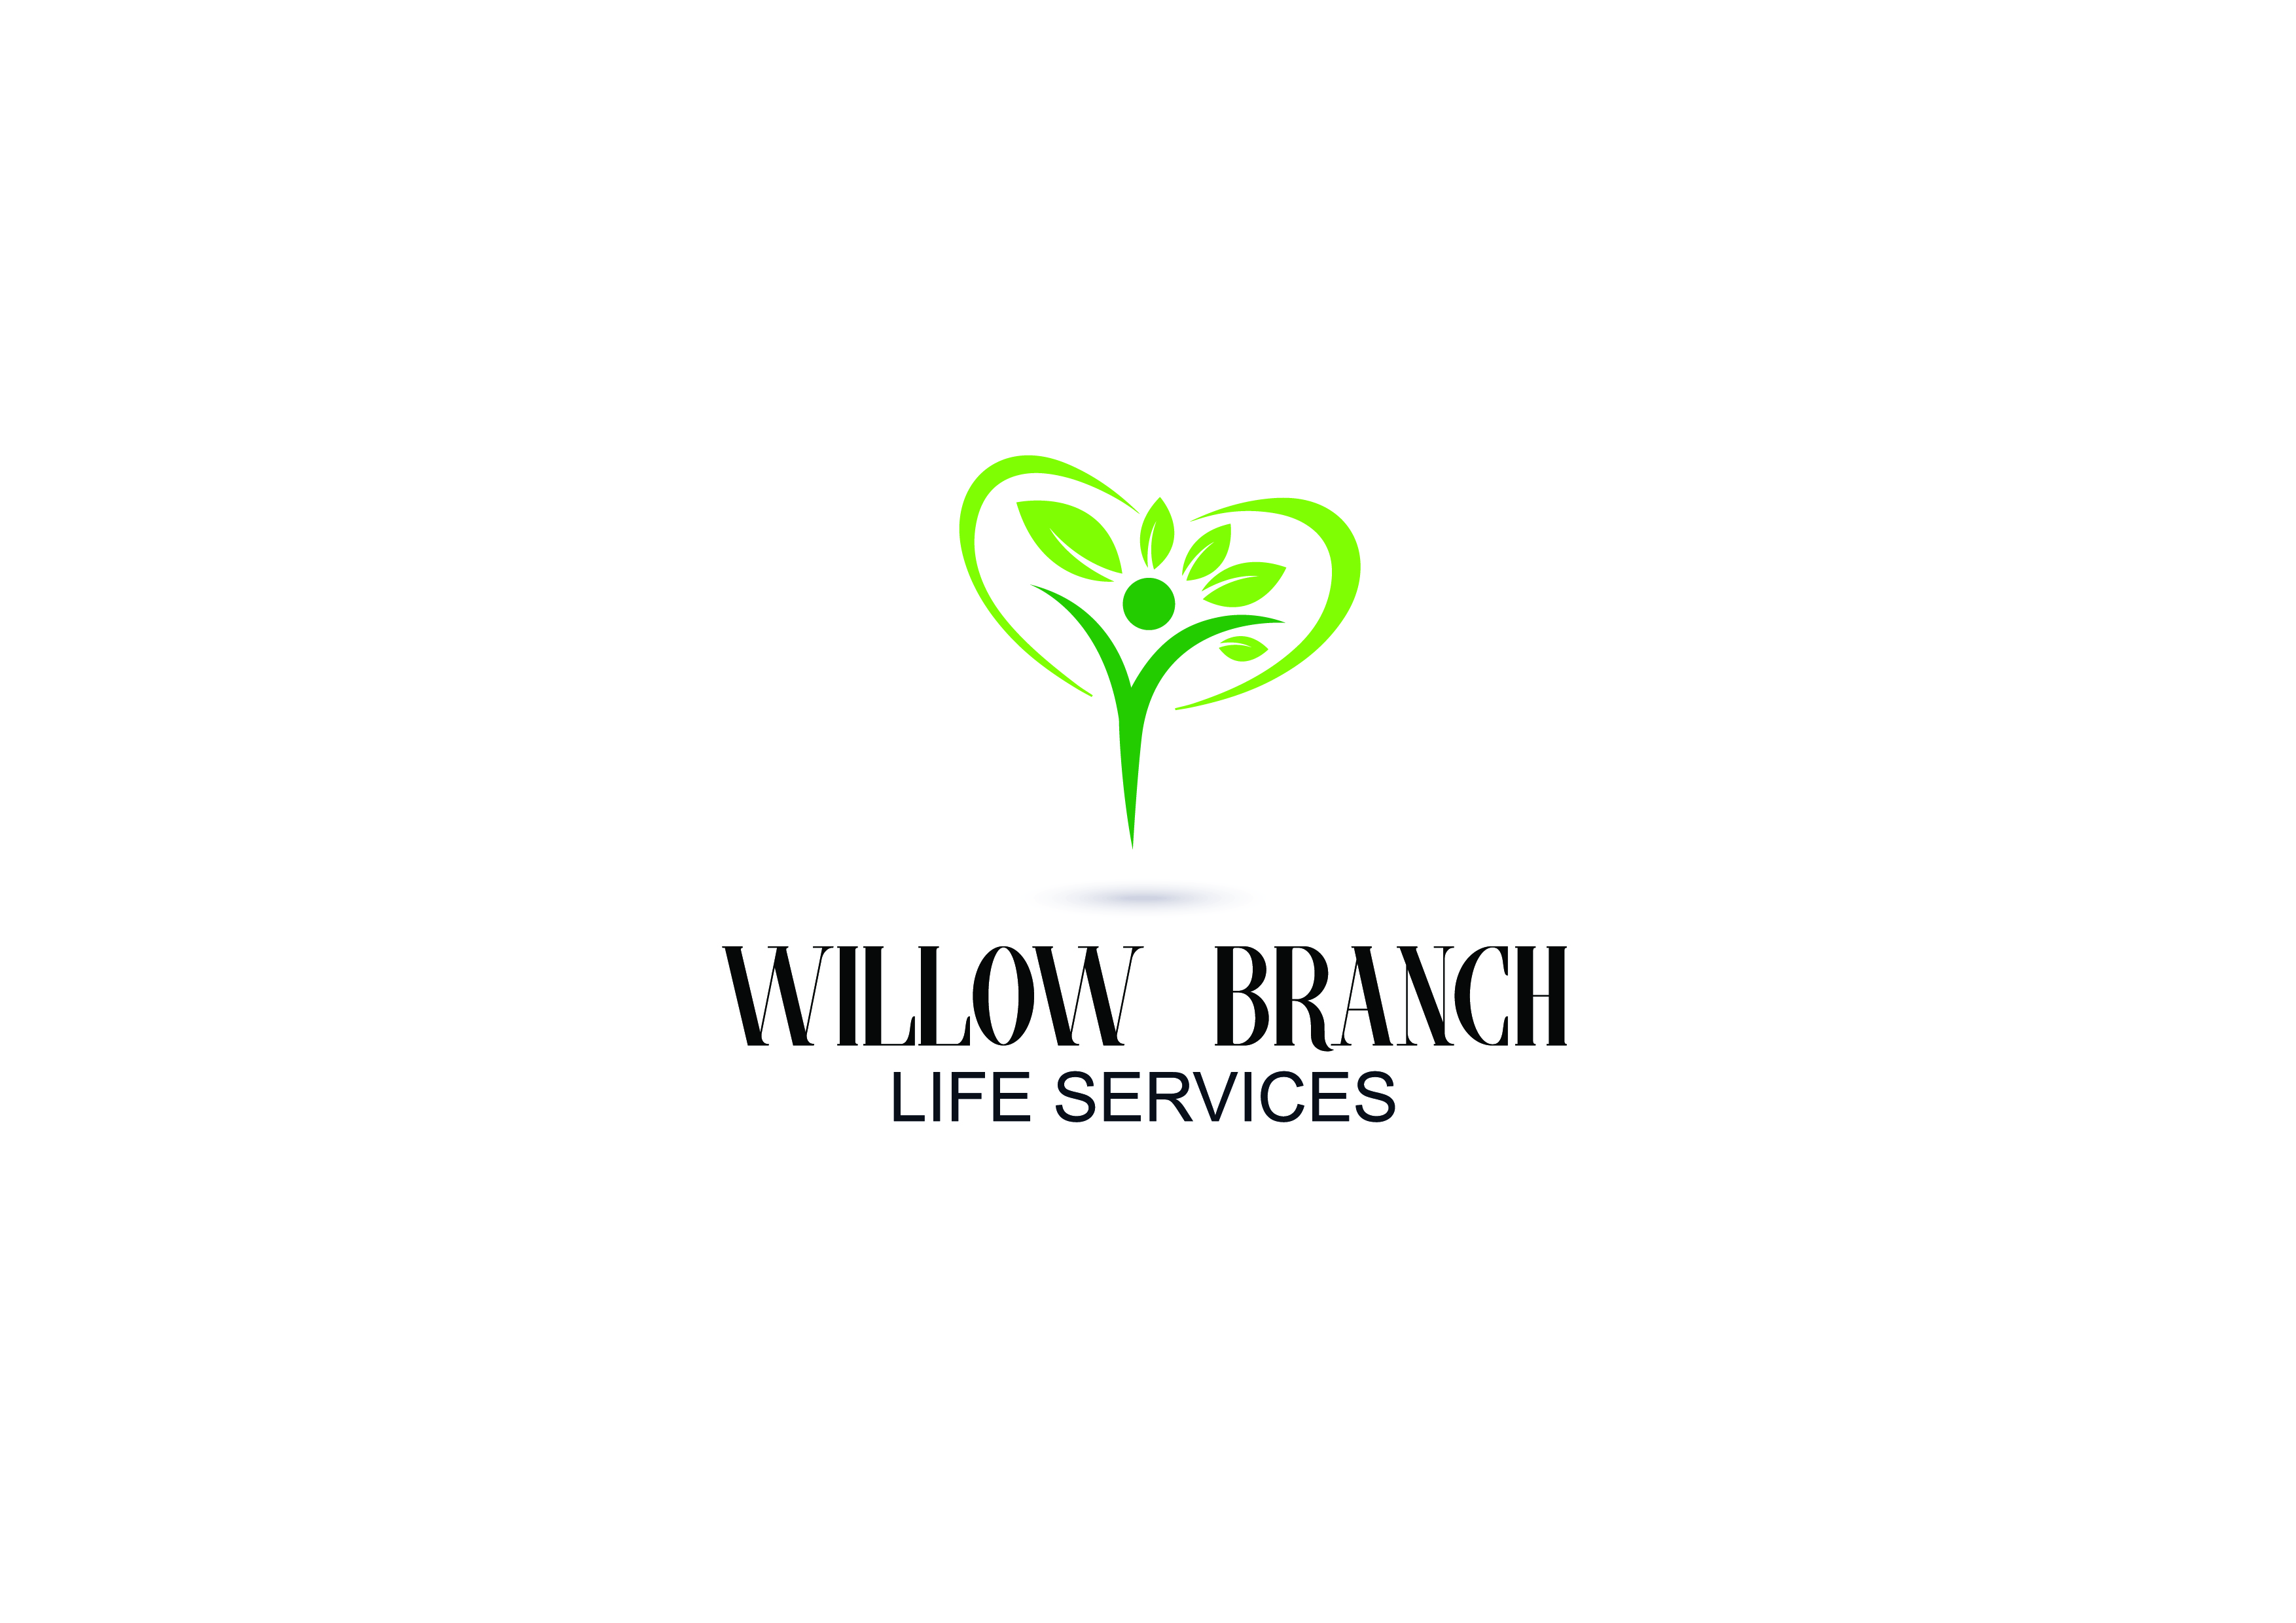 Logo Design by Anum Aamir - Entry No. 206 in the Logo Design Contest Artistic Logo Design for Willow Branch Life Service.